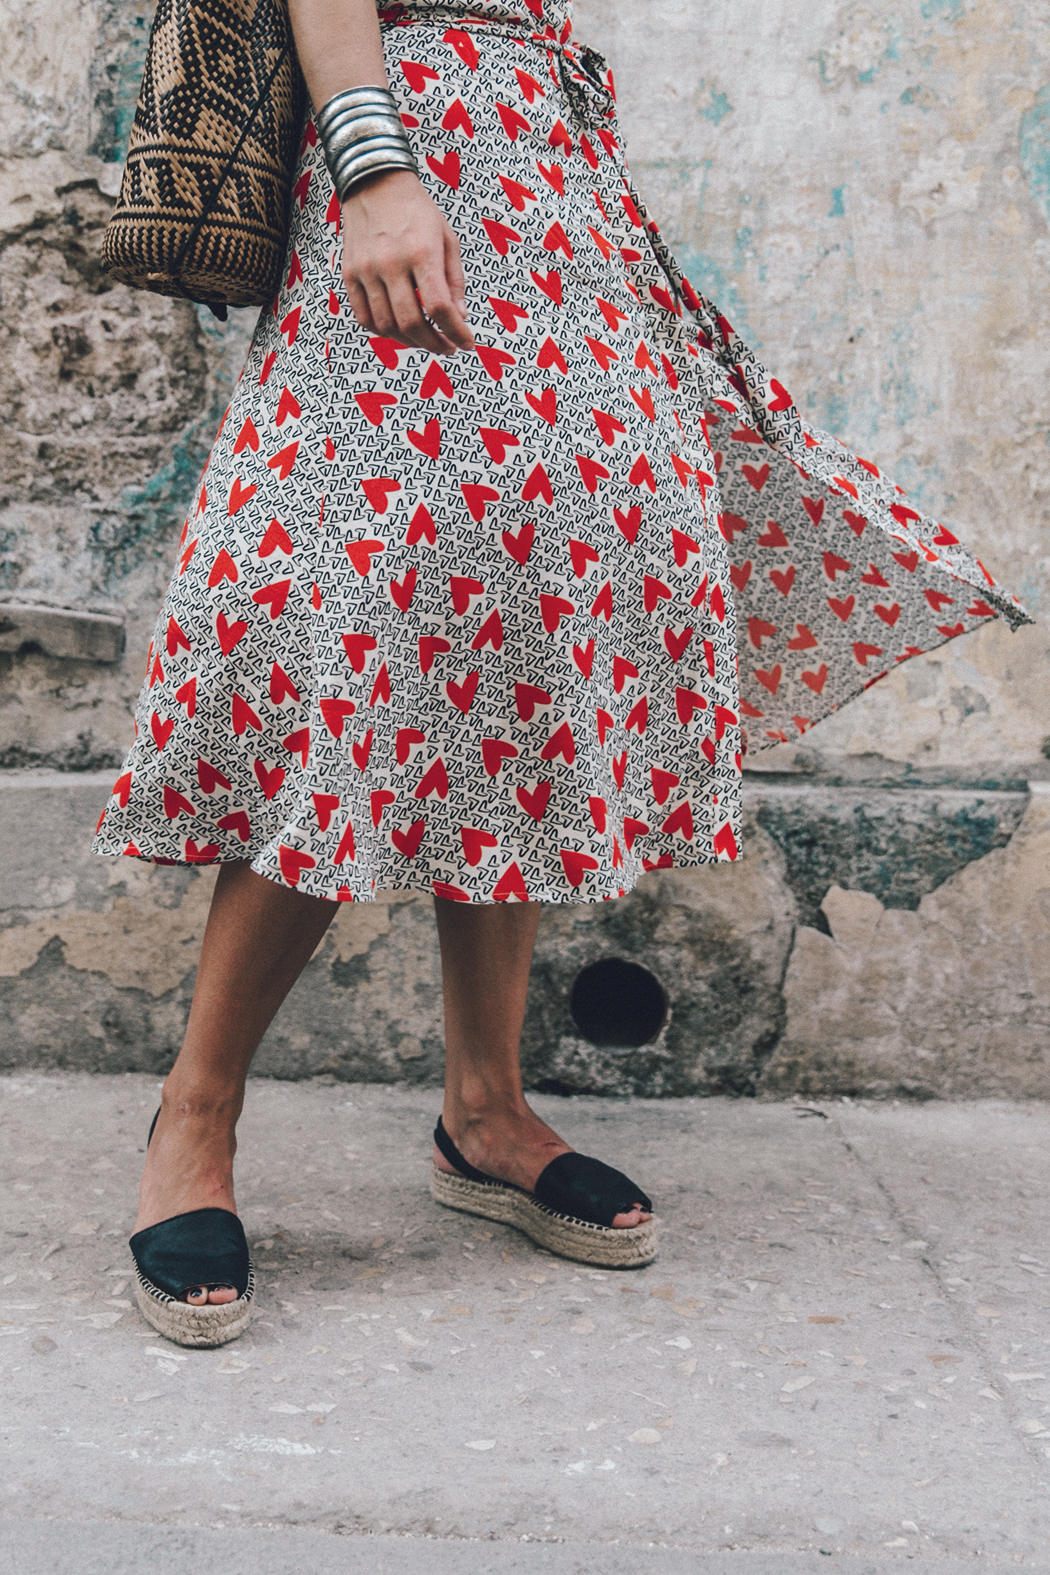 Cuba-La_Habana_Vieja-Hearts_Dress-Styled_By_Me-Aloha_Espadrilles-Outfit-Street_Style-Dress-Backpack-48